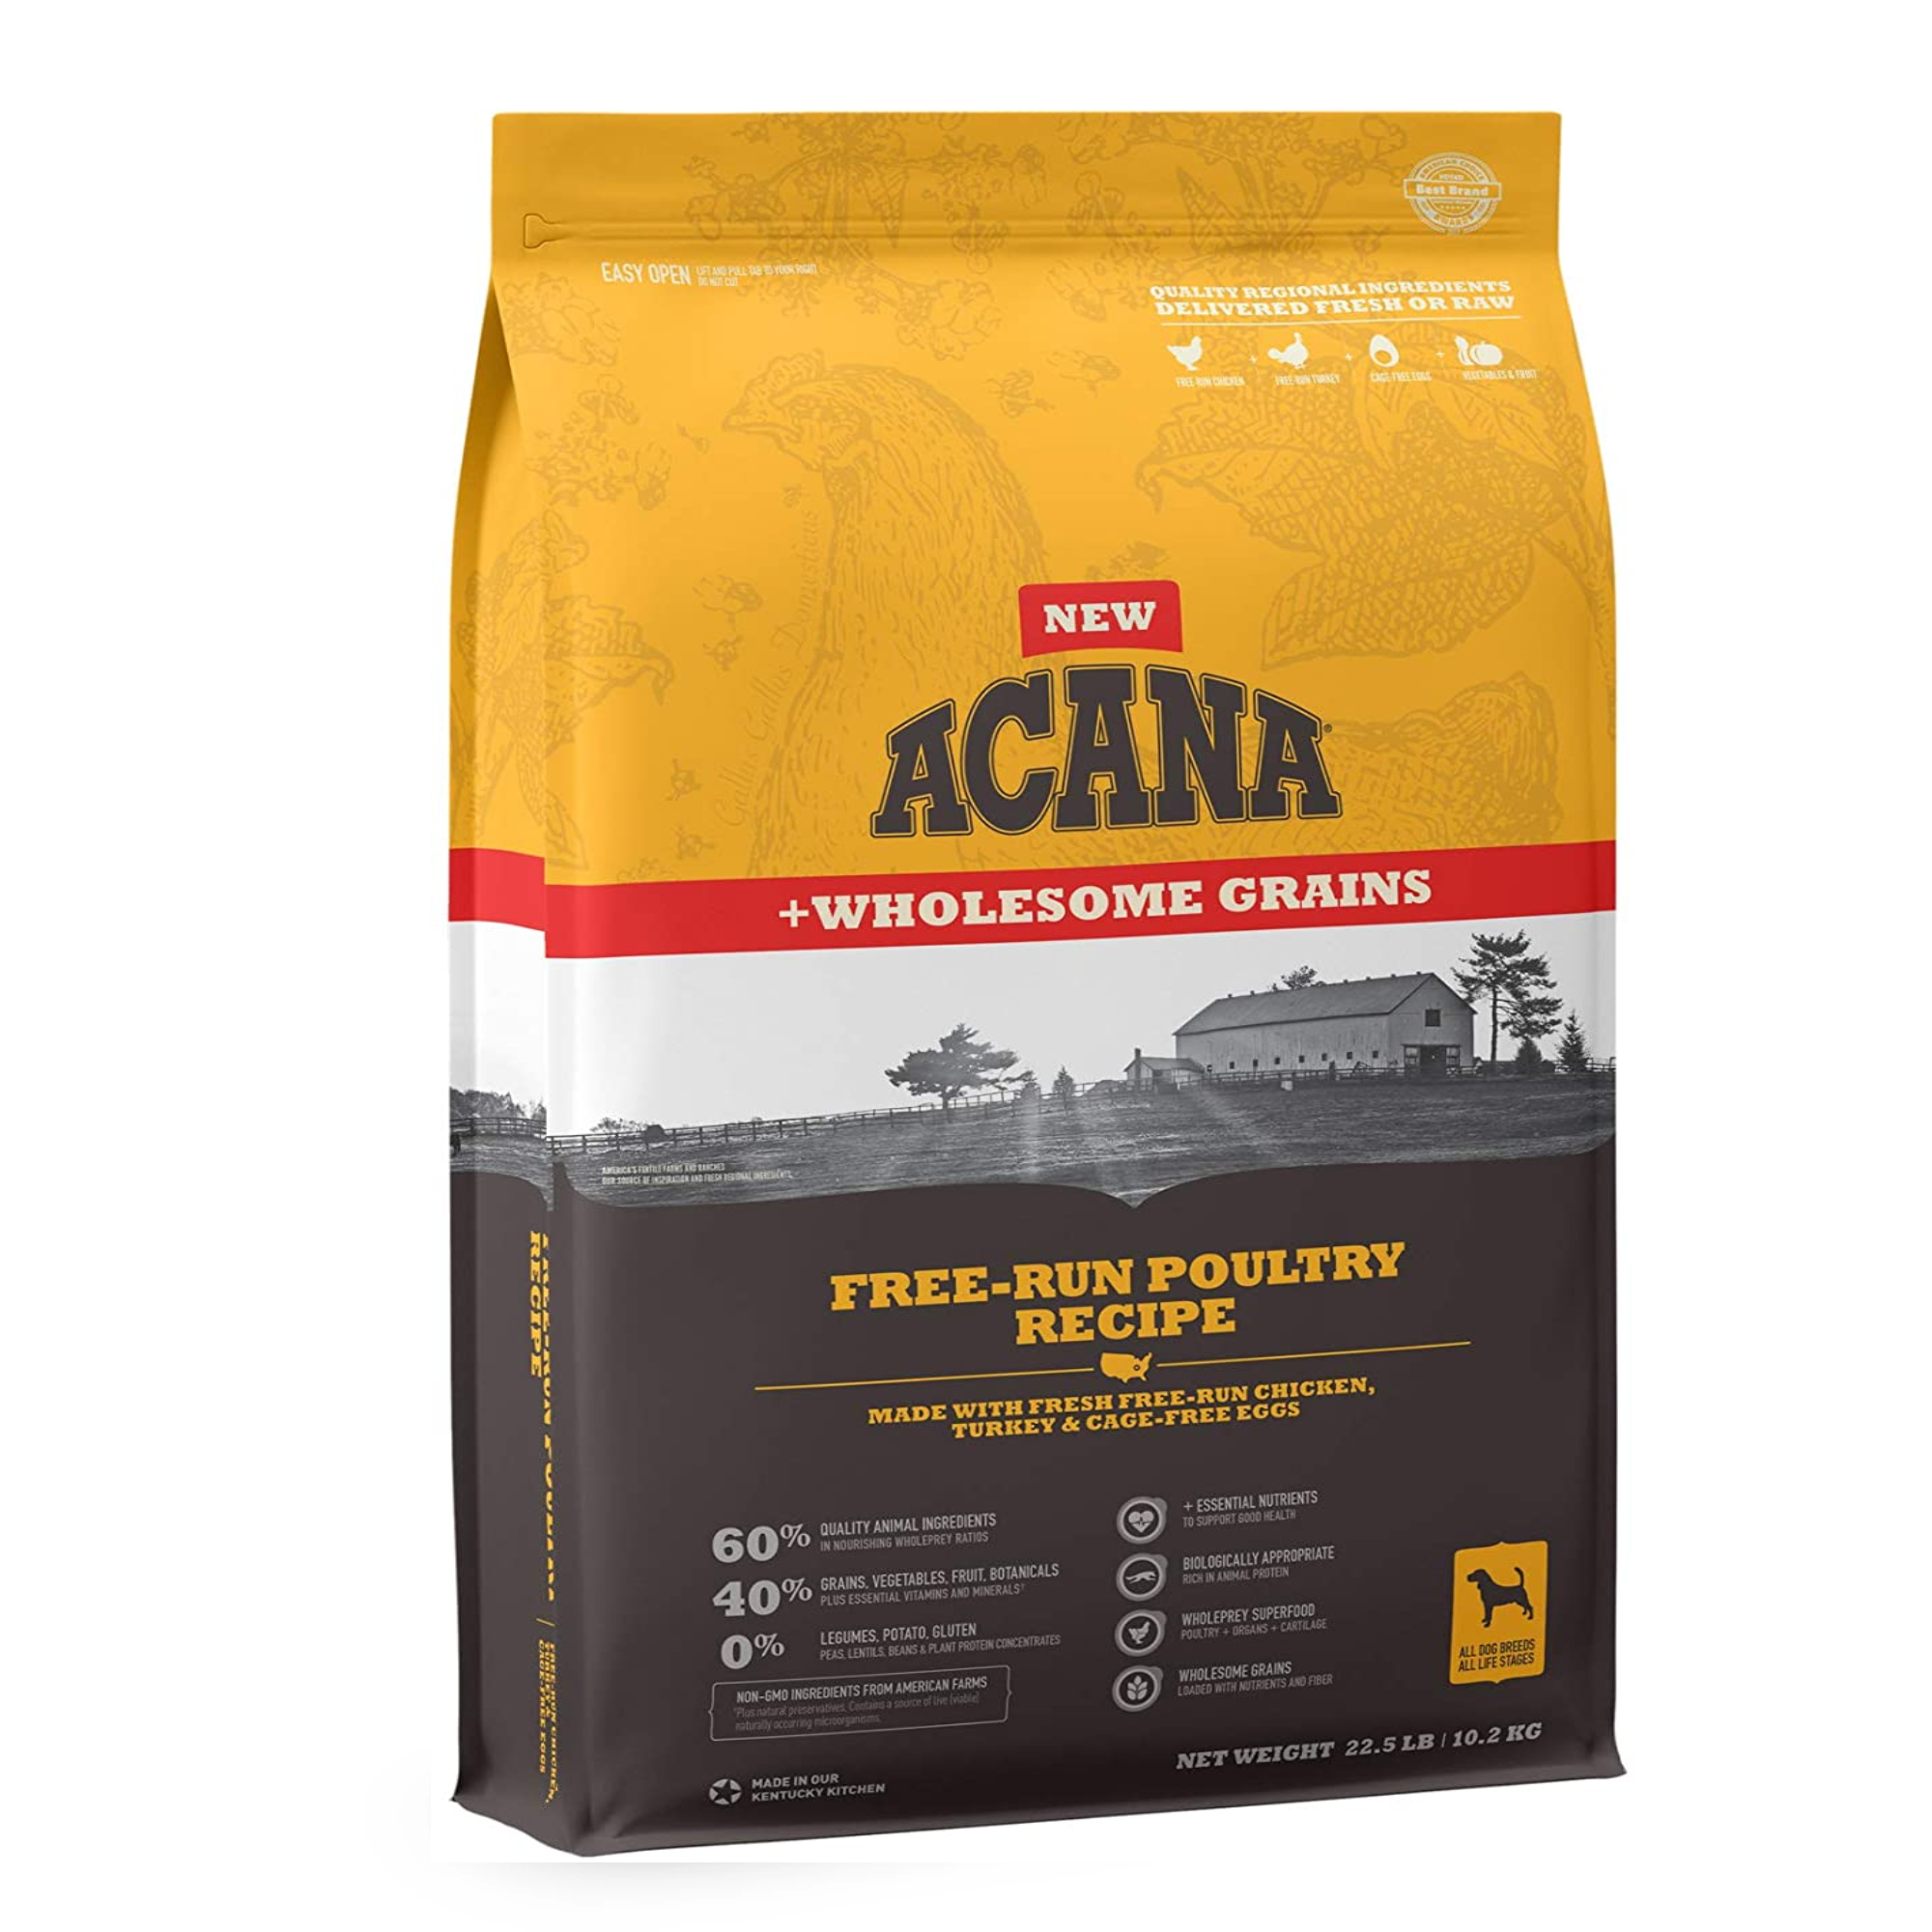 Acana Free-Run Poultry Wholesome Grains Dog Food